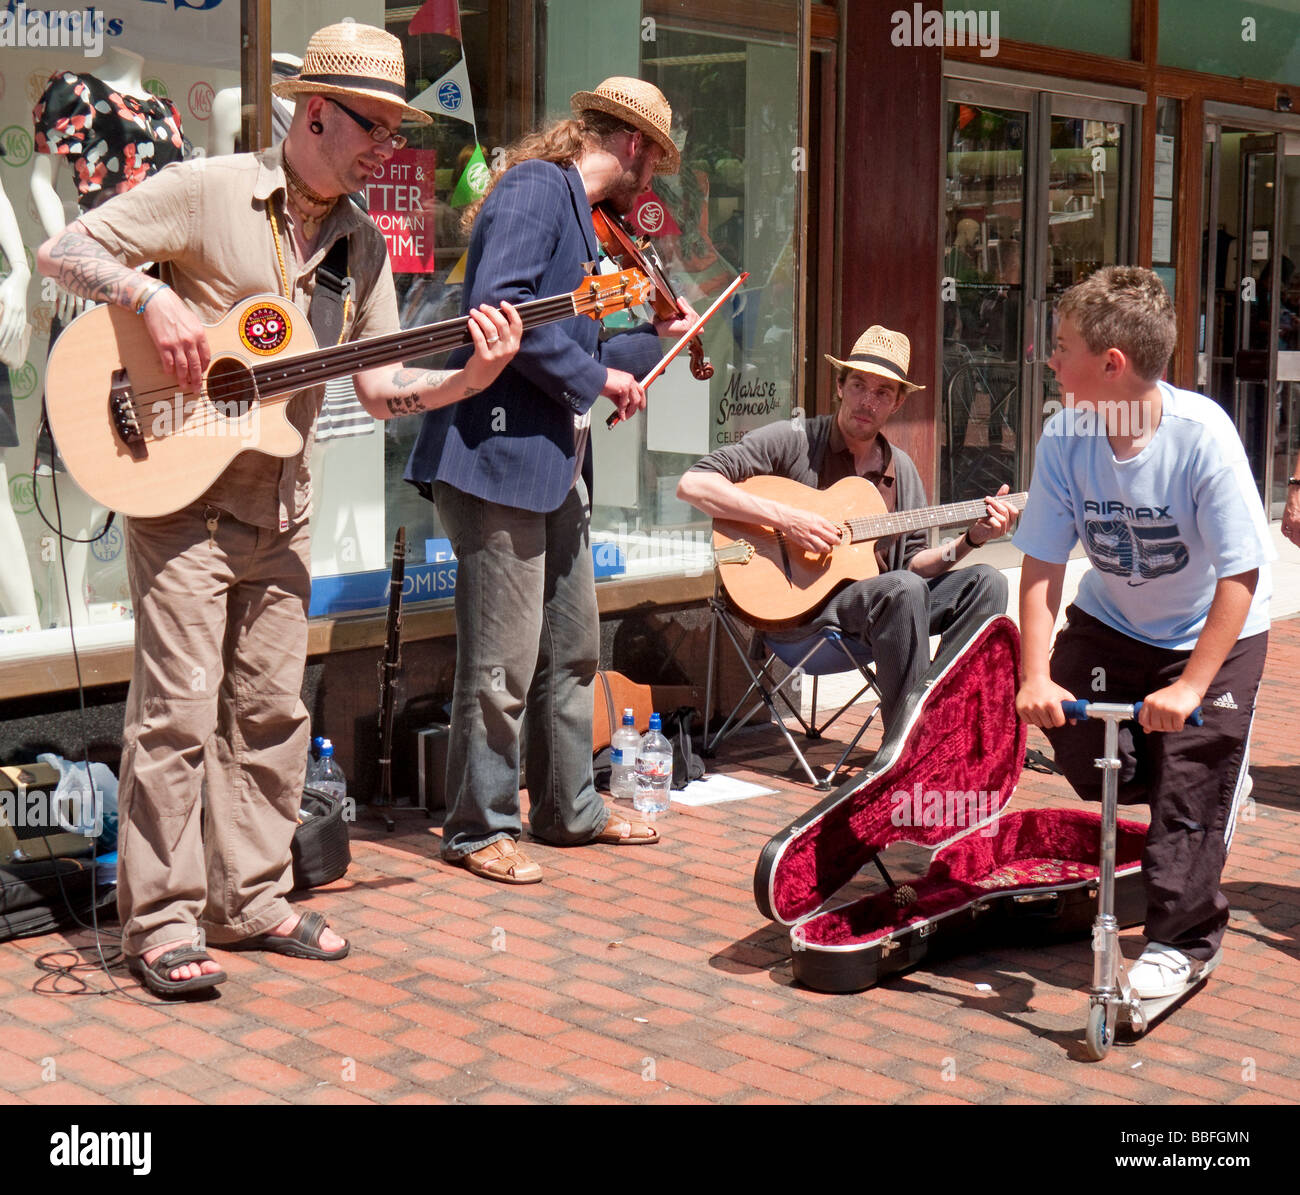 Three buskers play in a street in the sun - Stock Image